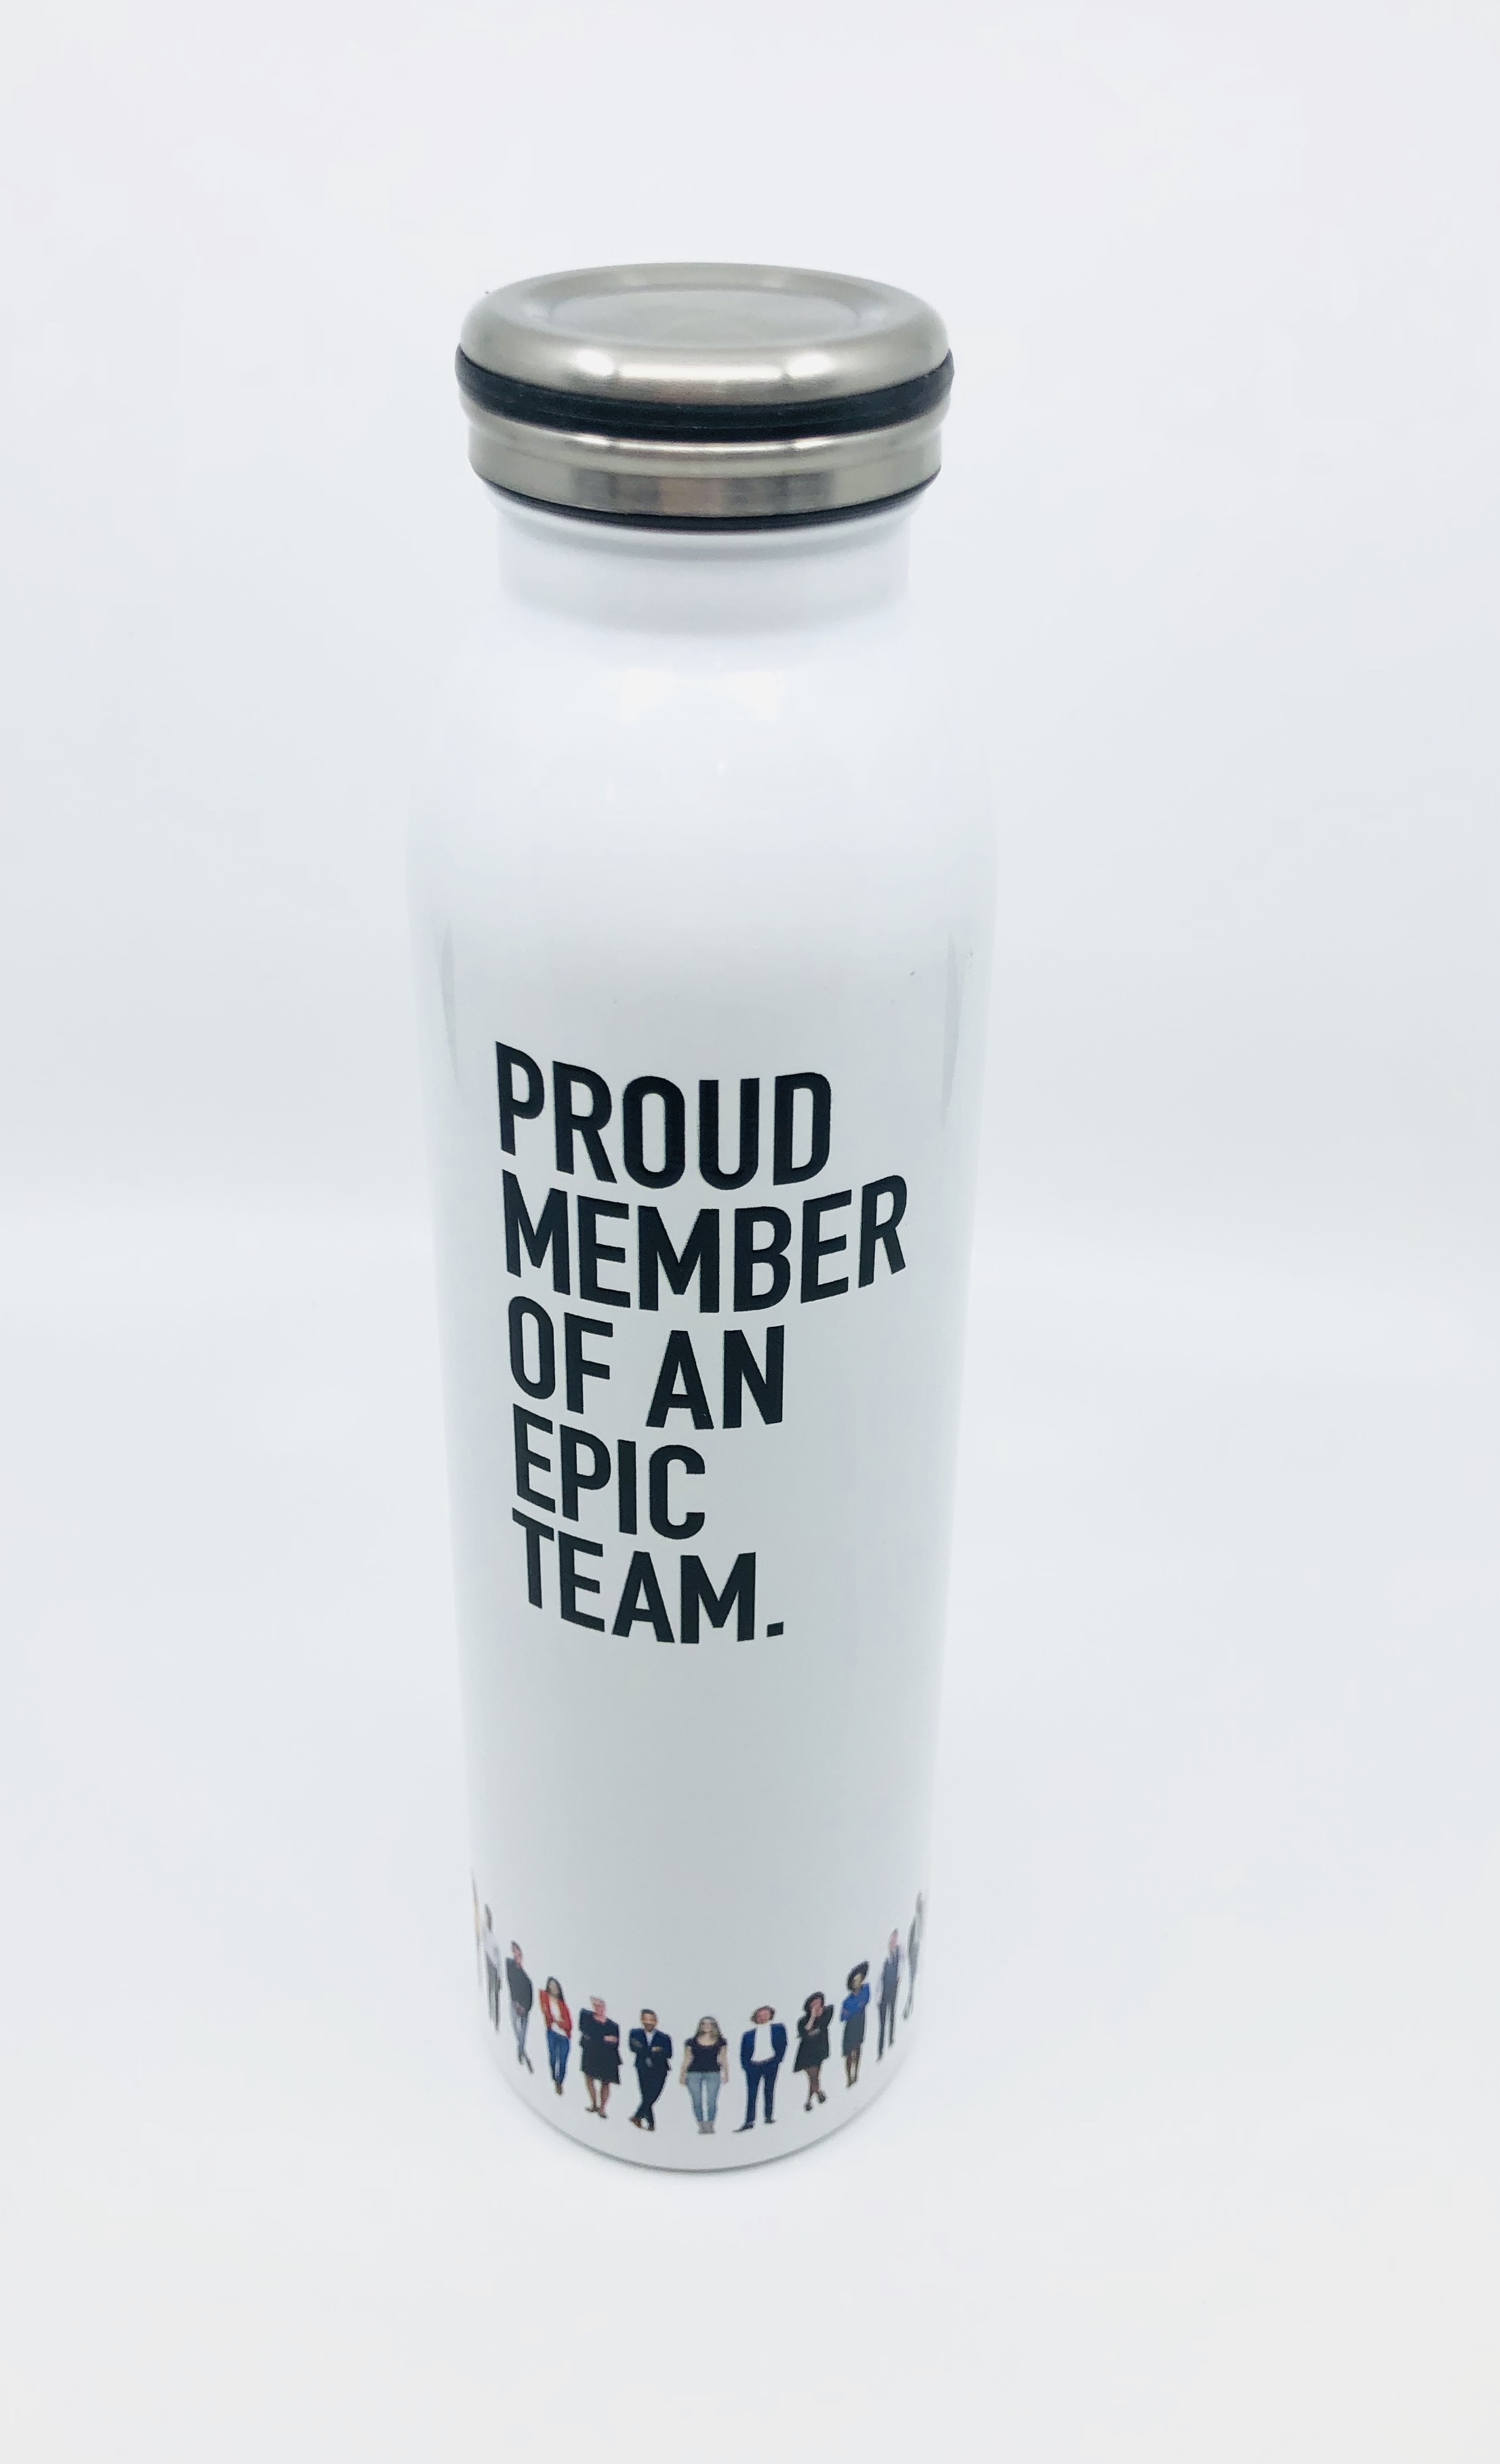 logounltd_laser_etching_embroidery_screen_printing_apparel_uniform_custom_tshirts_t_shirt_kirkland_bellevue_seattle_redmond_woodinville_branded_merchandise_promotional_products_logo_unltd_coffee_water_tumblers (7).jpg